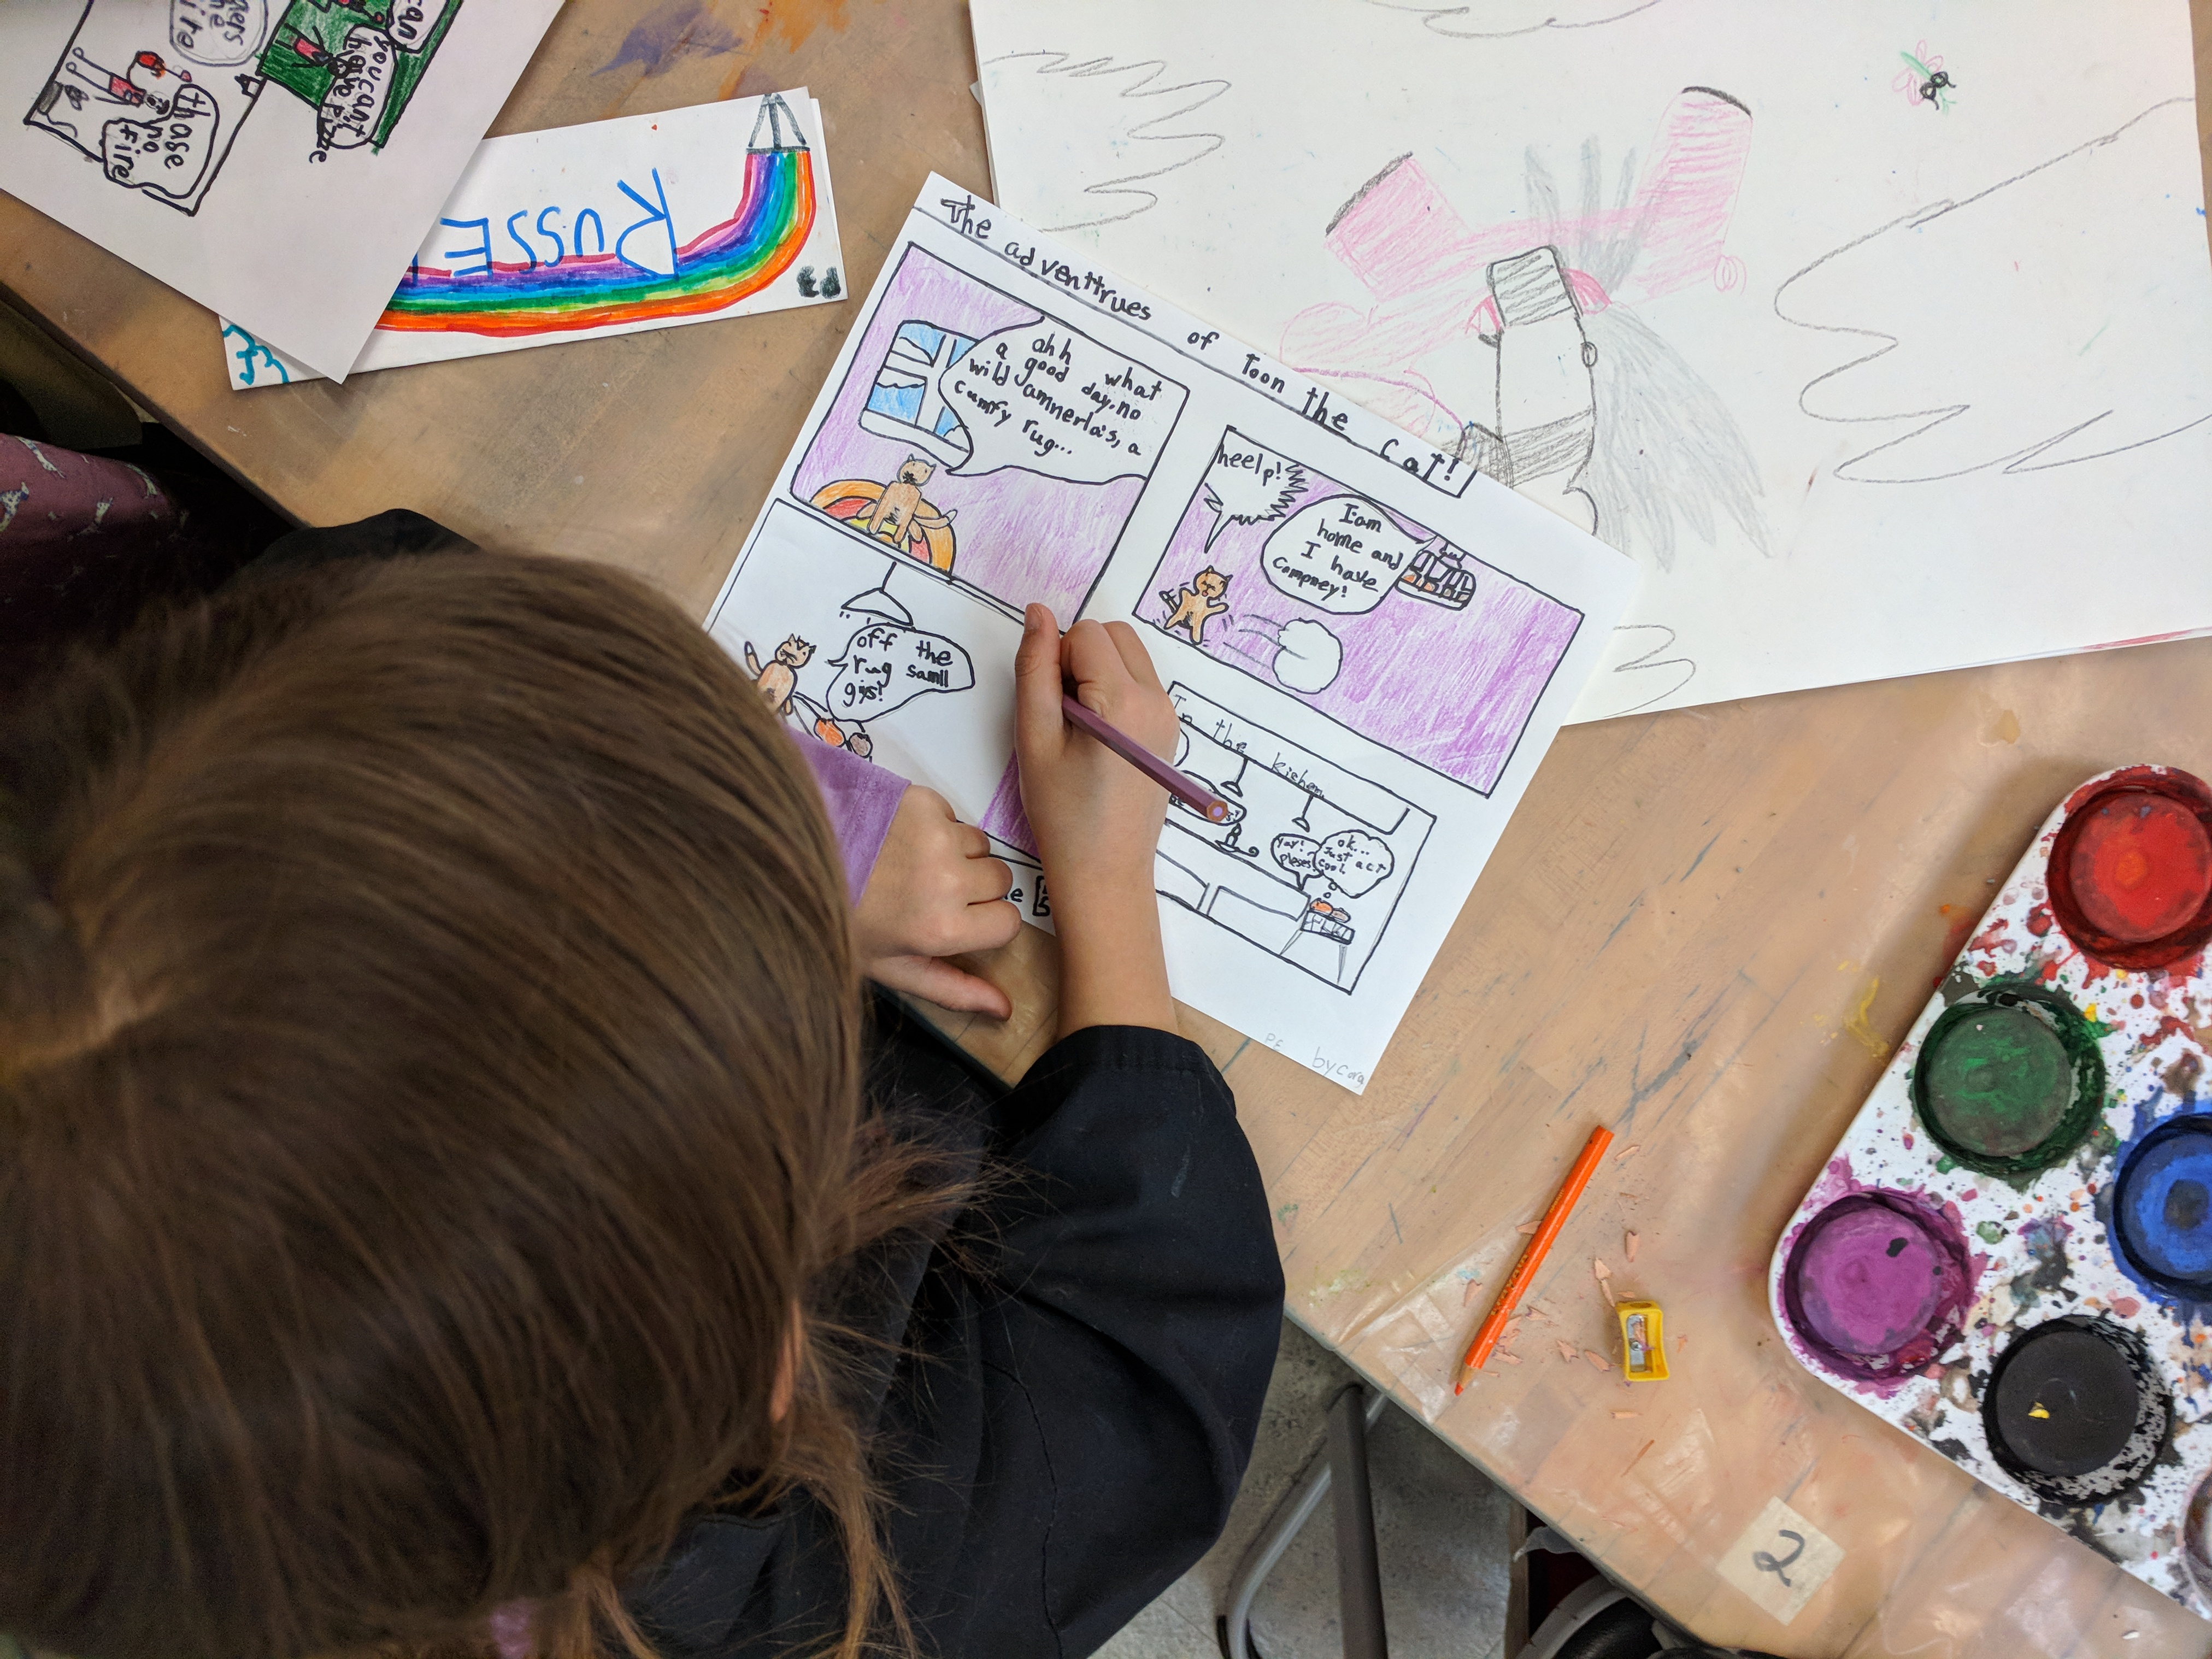 A young girl creating a comic strip in an art class